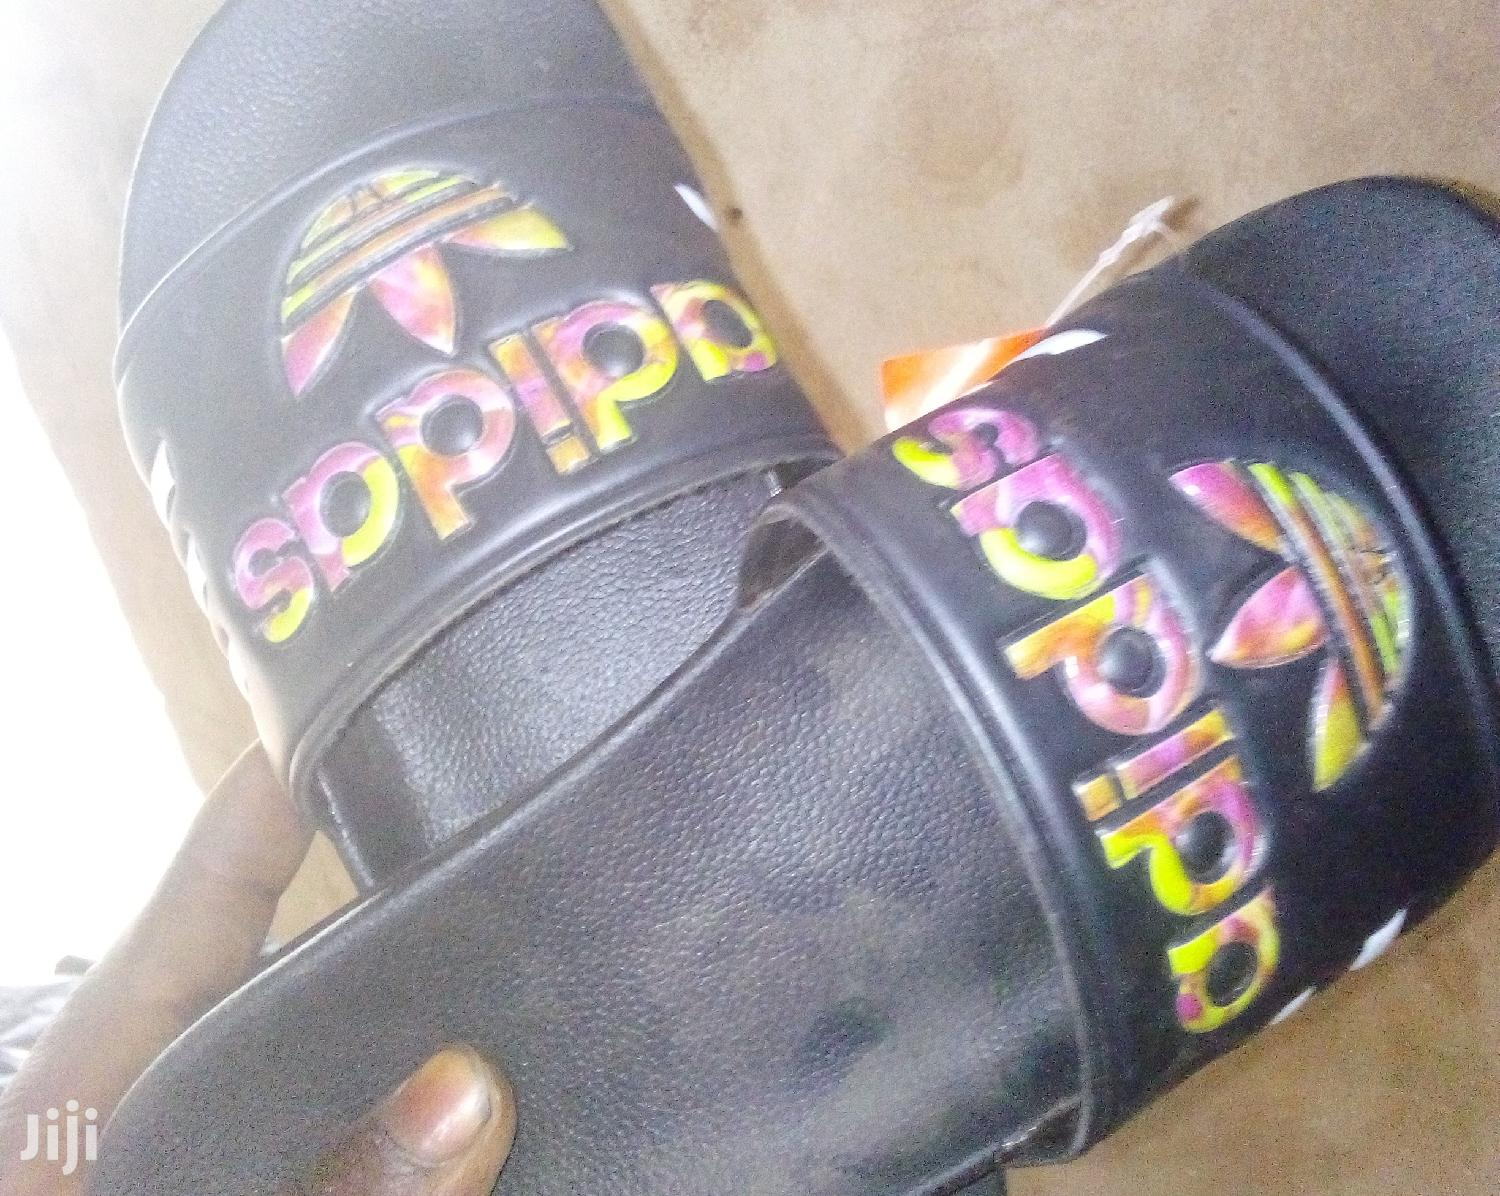 Sandals And More   Children's Shoes for sale in Achimota, Greater Accra, Ghana